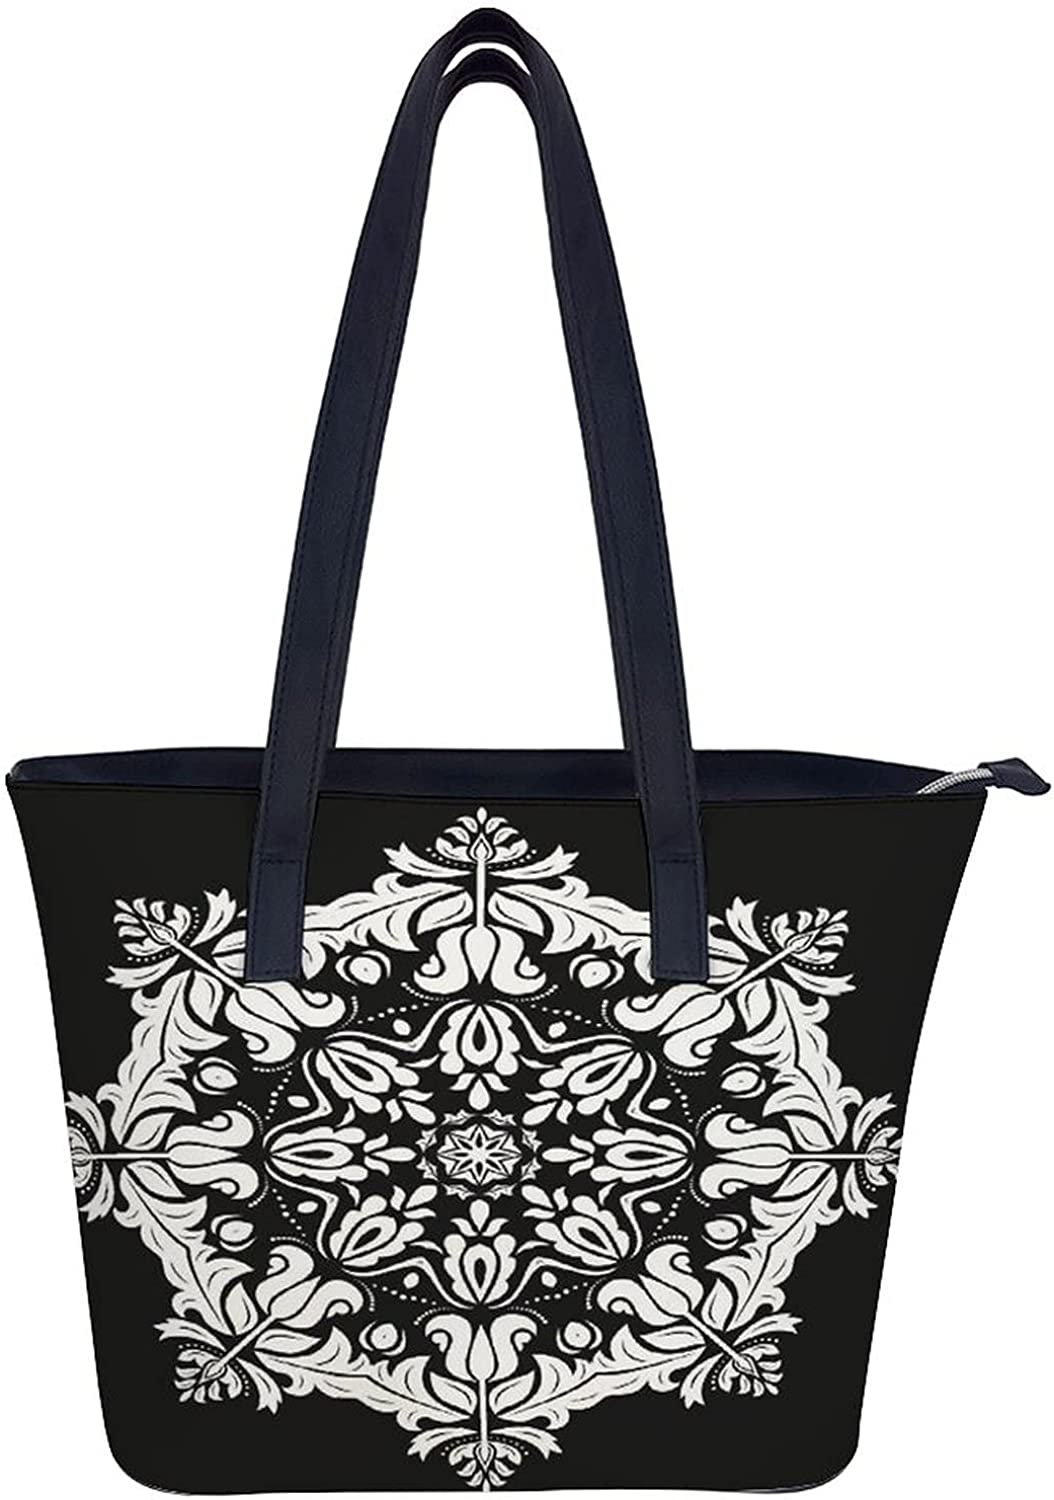 Women's Soft Faux All items free shipping Tampa Mall Leather Tote Sunflower Watercolor Bag Shoulder